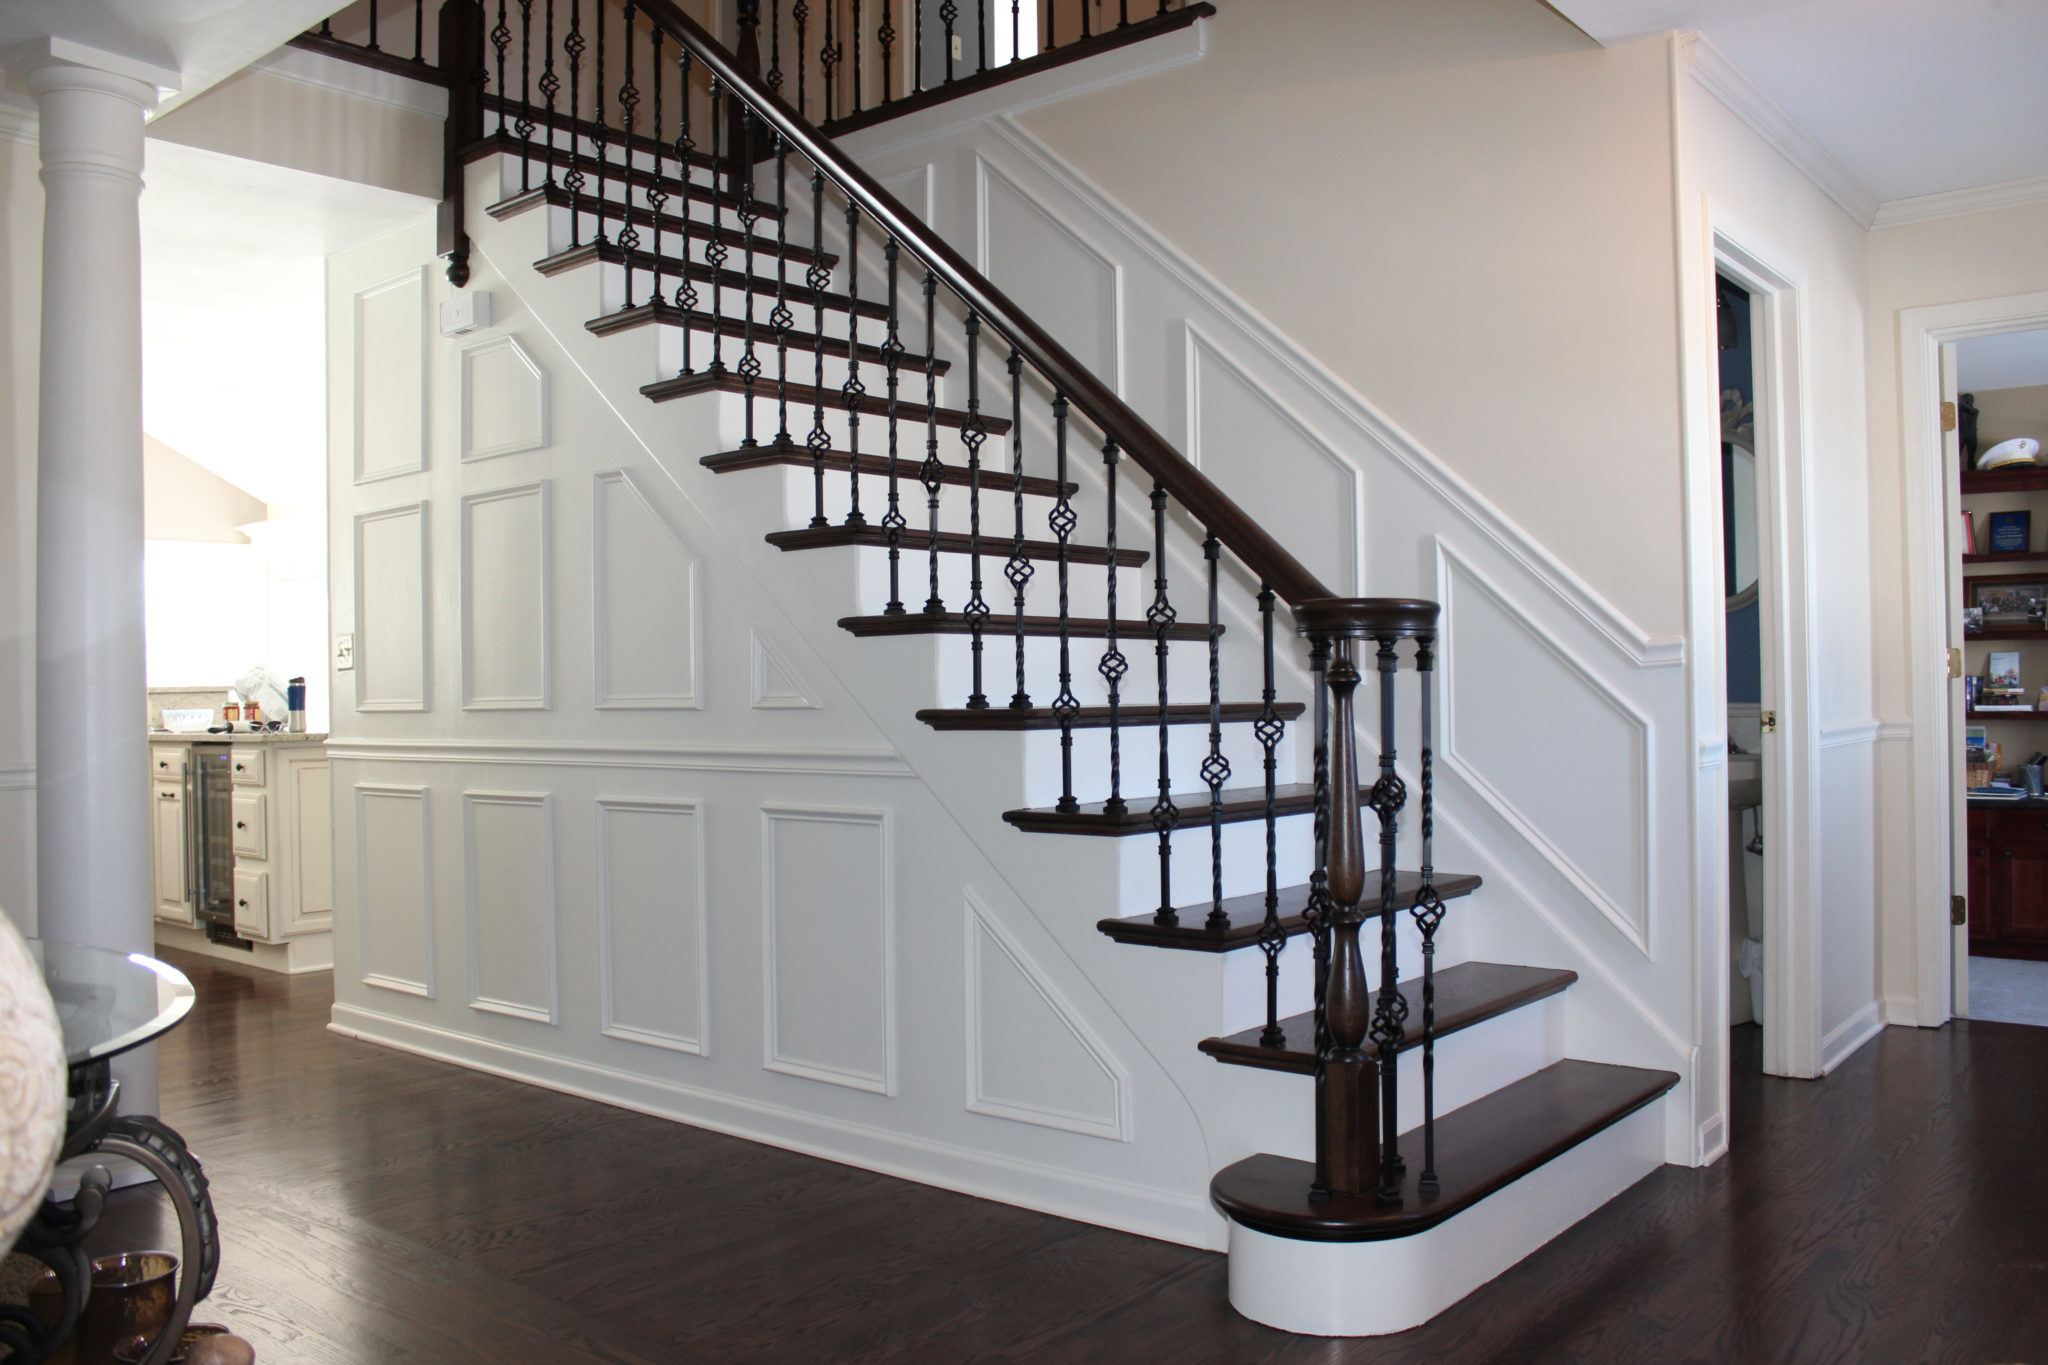 5 Stunning Stairway Trends for Your Home